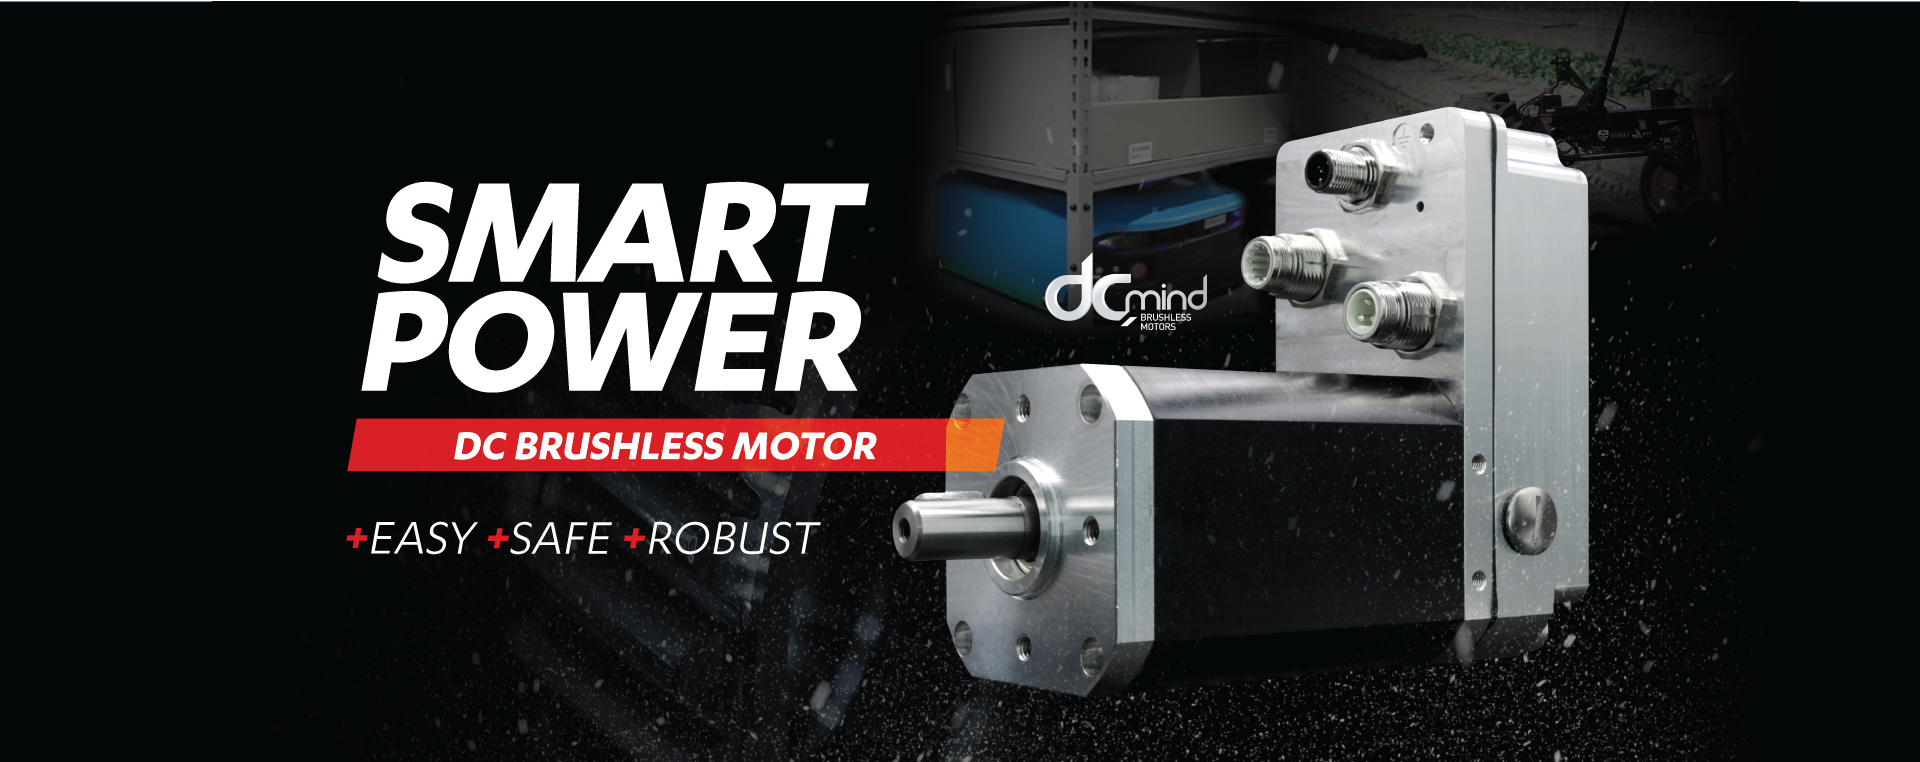 DC Brushless smart power